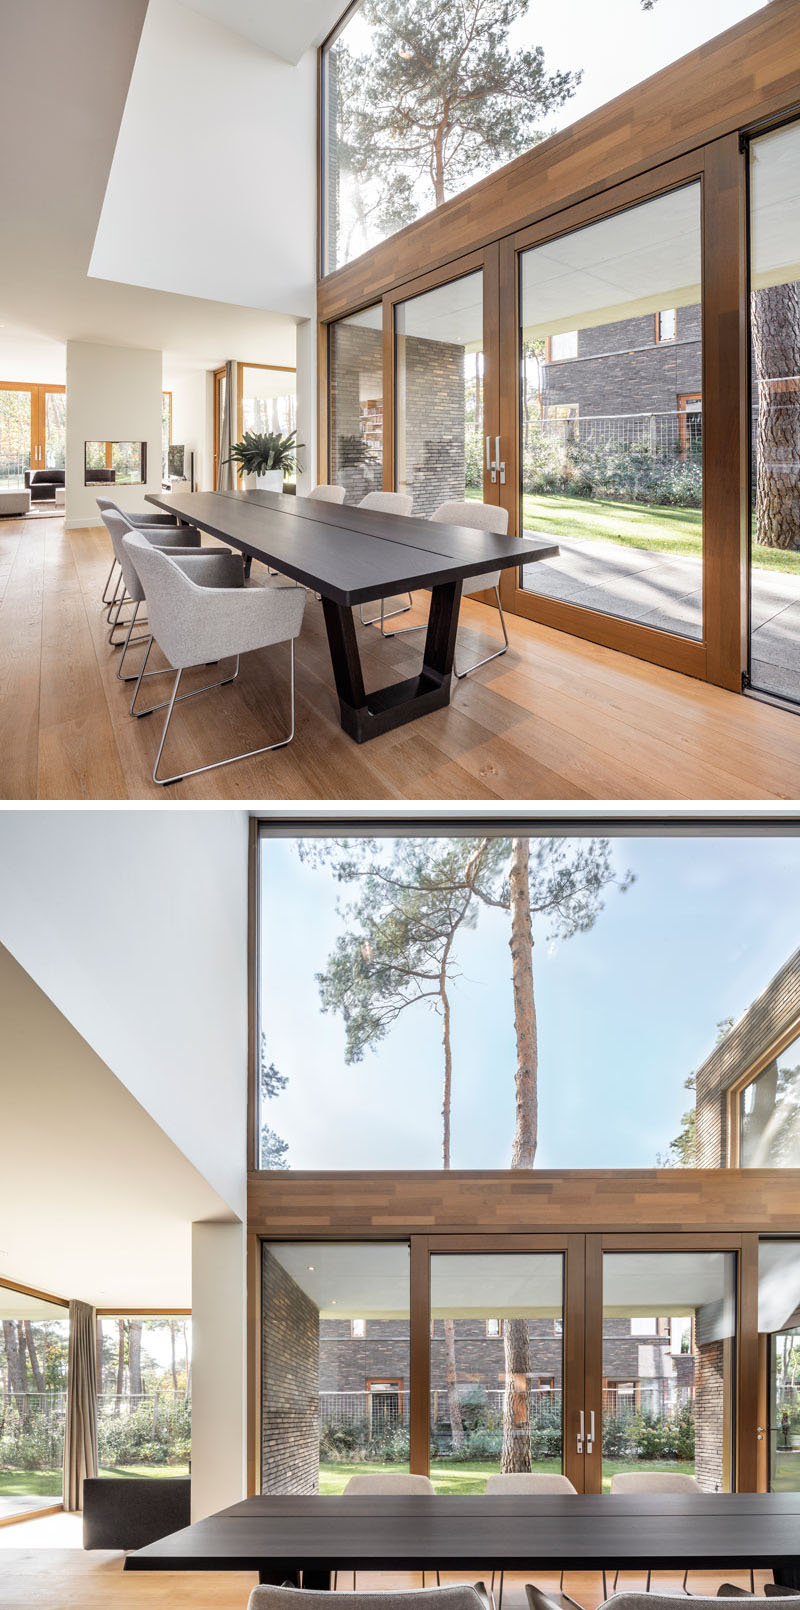 Large Windows Fill This Dutch Home With Plenty Of Natural Light